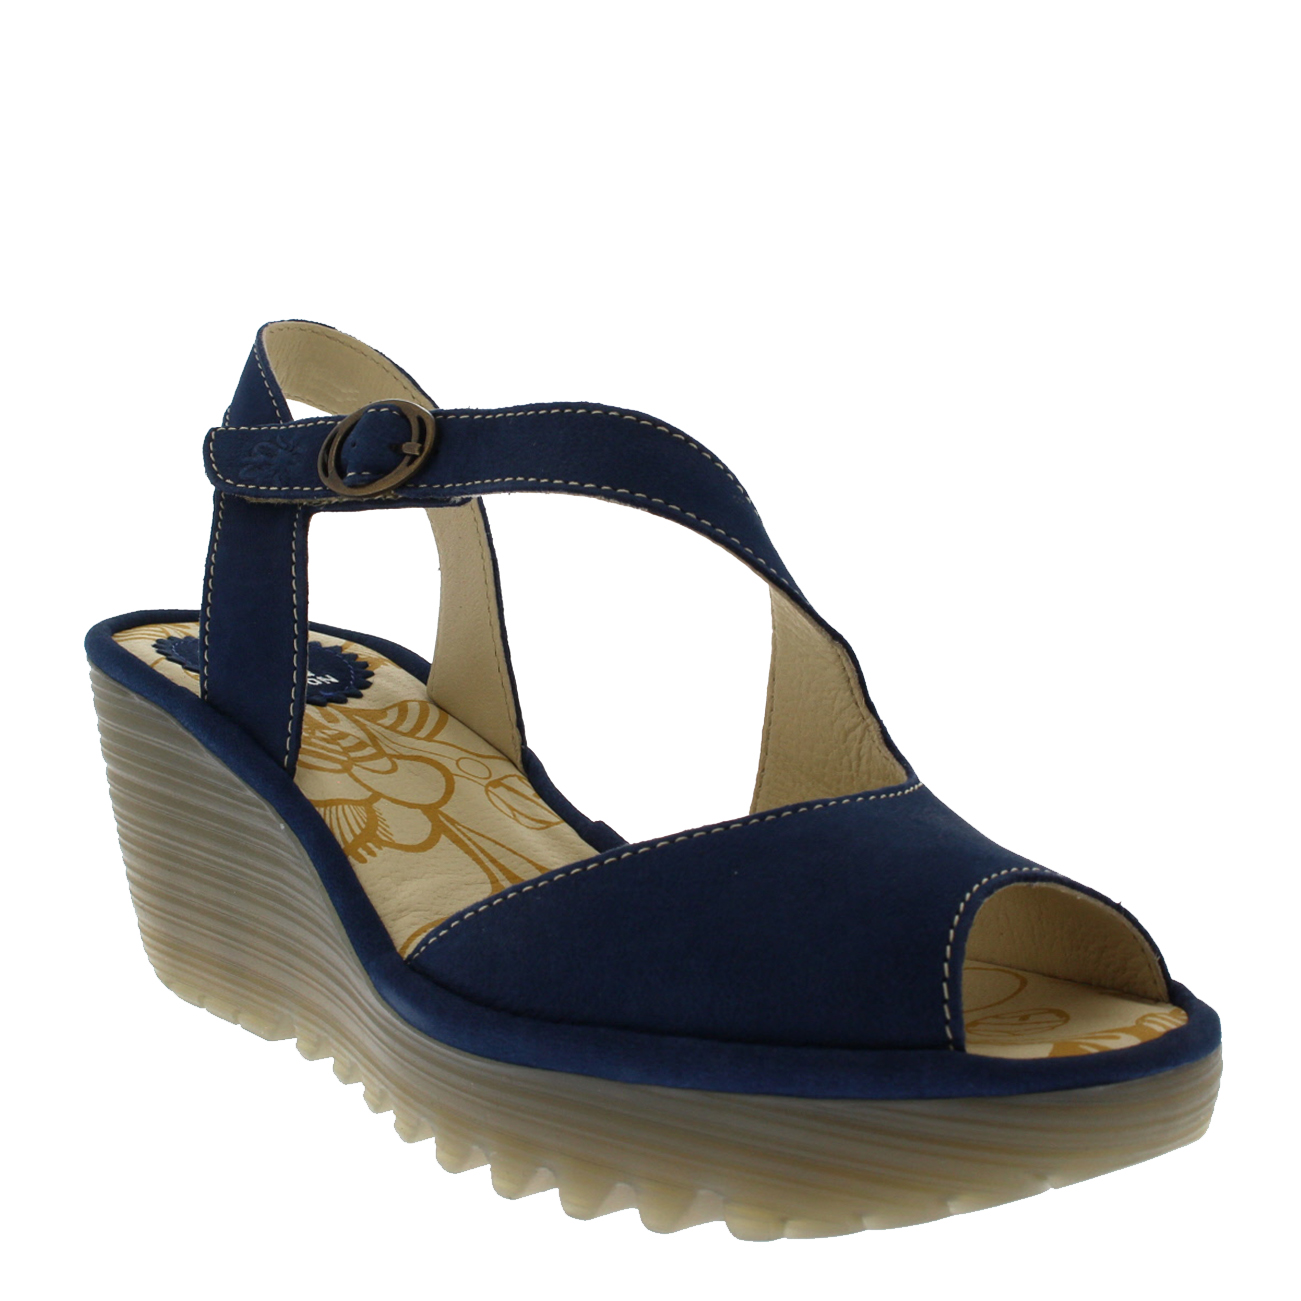 Womens-Fly-London-Yamp-Peep-Toe-Summer-Cut-Out-Buckle-Wedge-Heel-Sandals-US-5-12 thumbnail 12